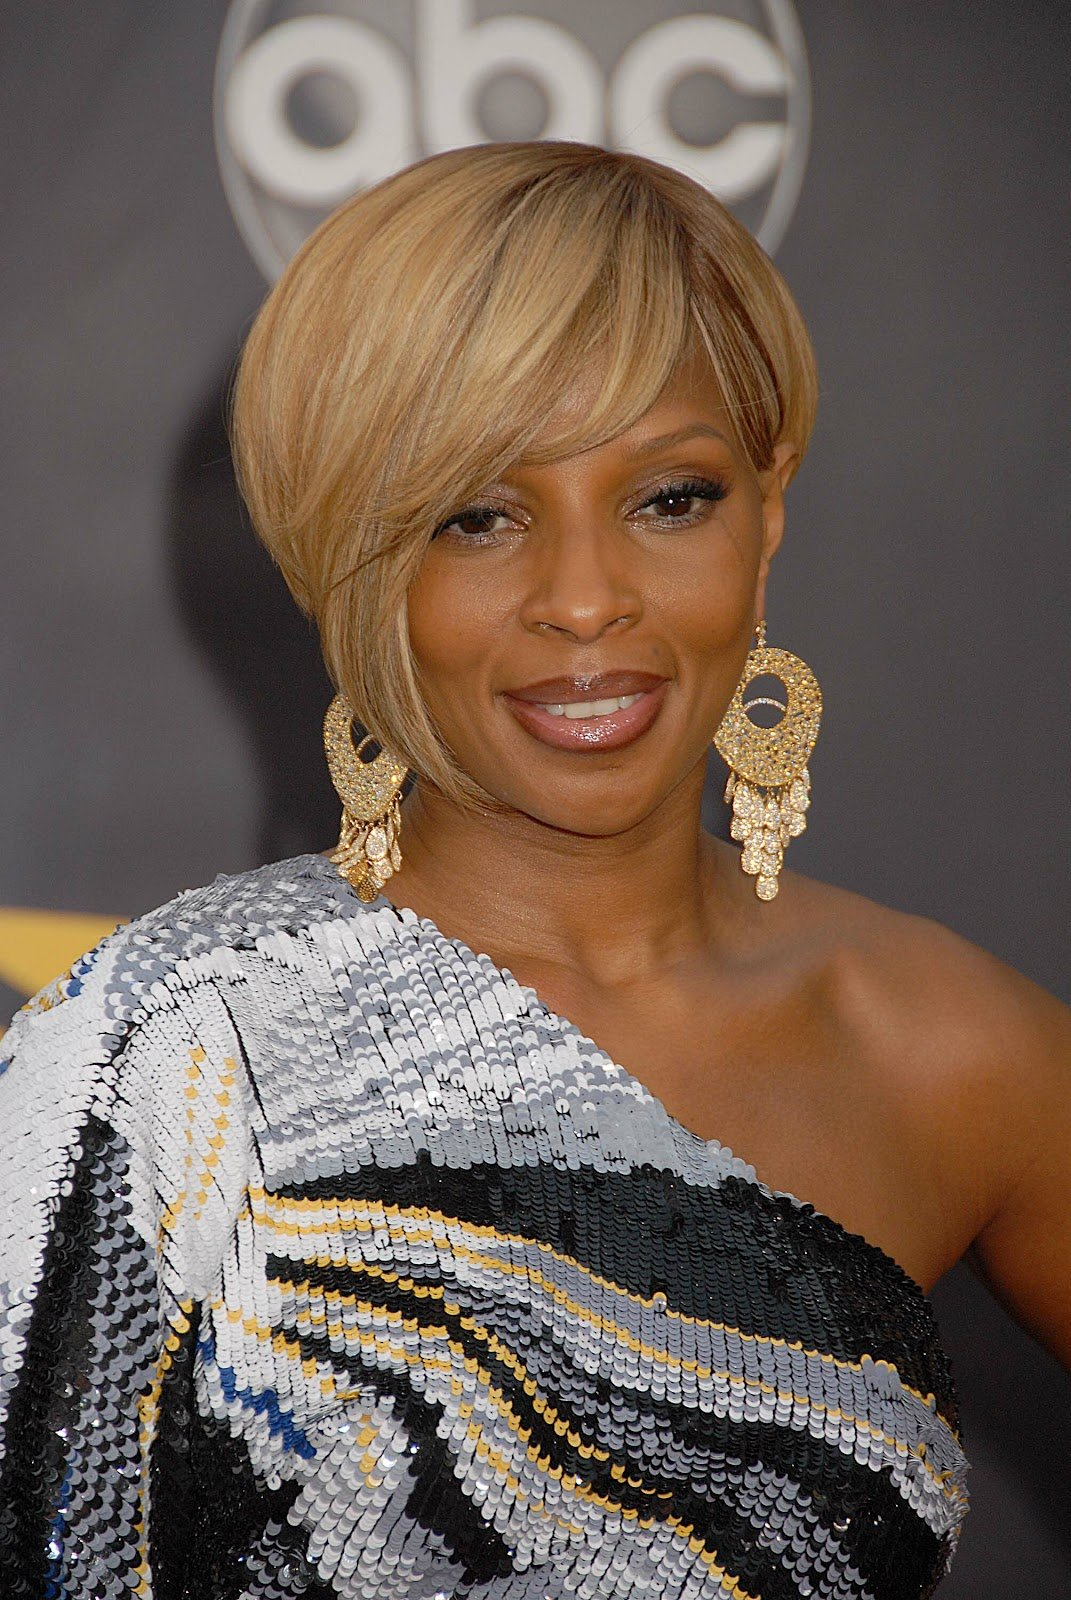 The Best Mary J Blige Hairstyle Trends Mary J Blige Hairstyle Pictures